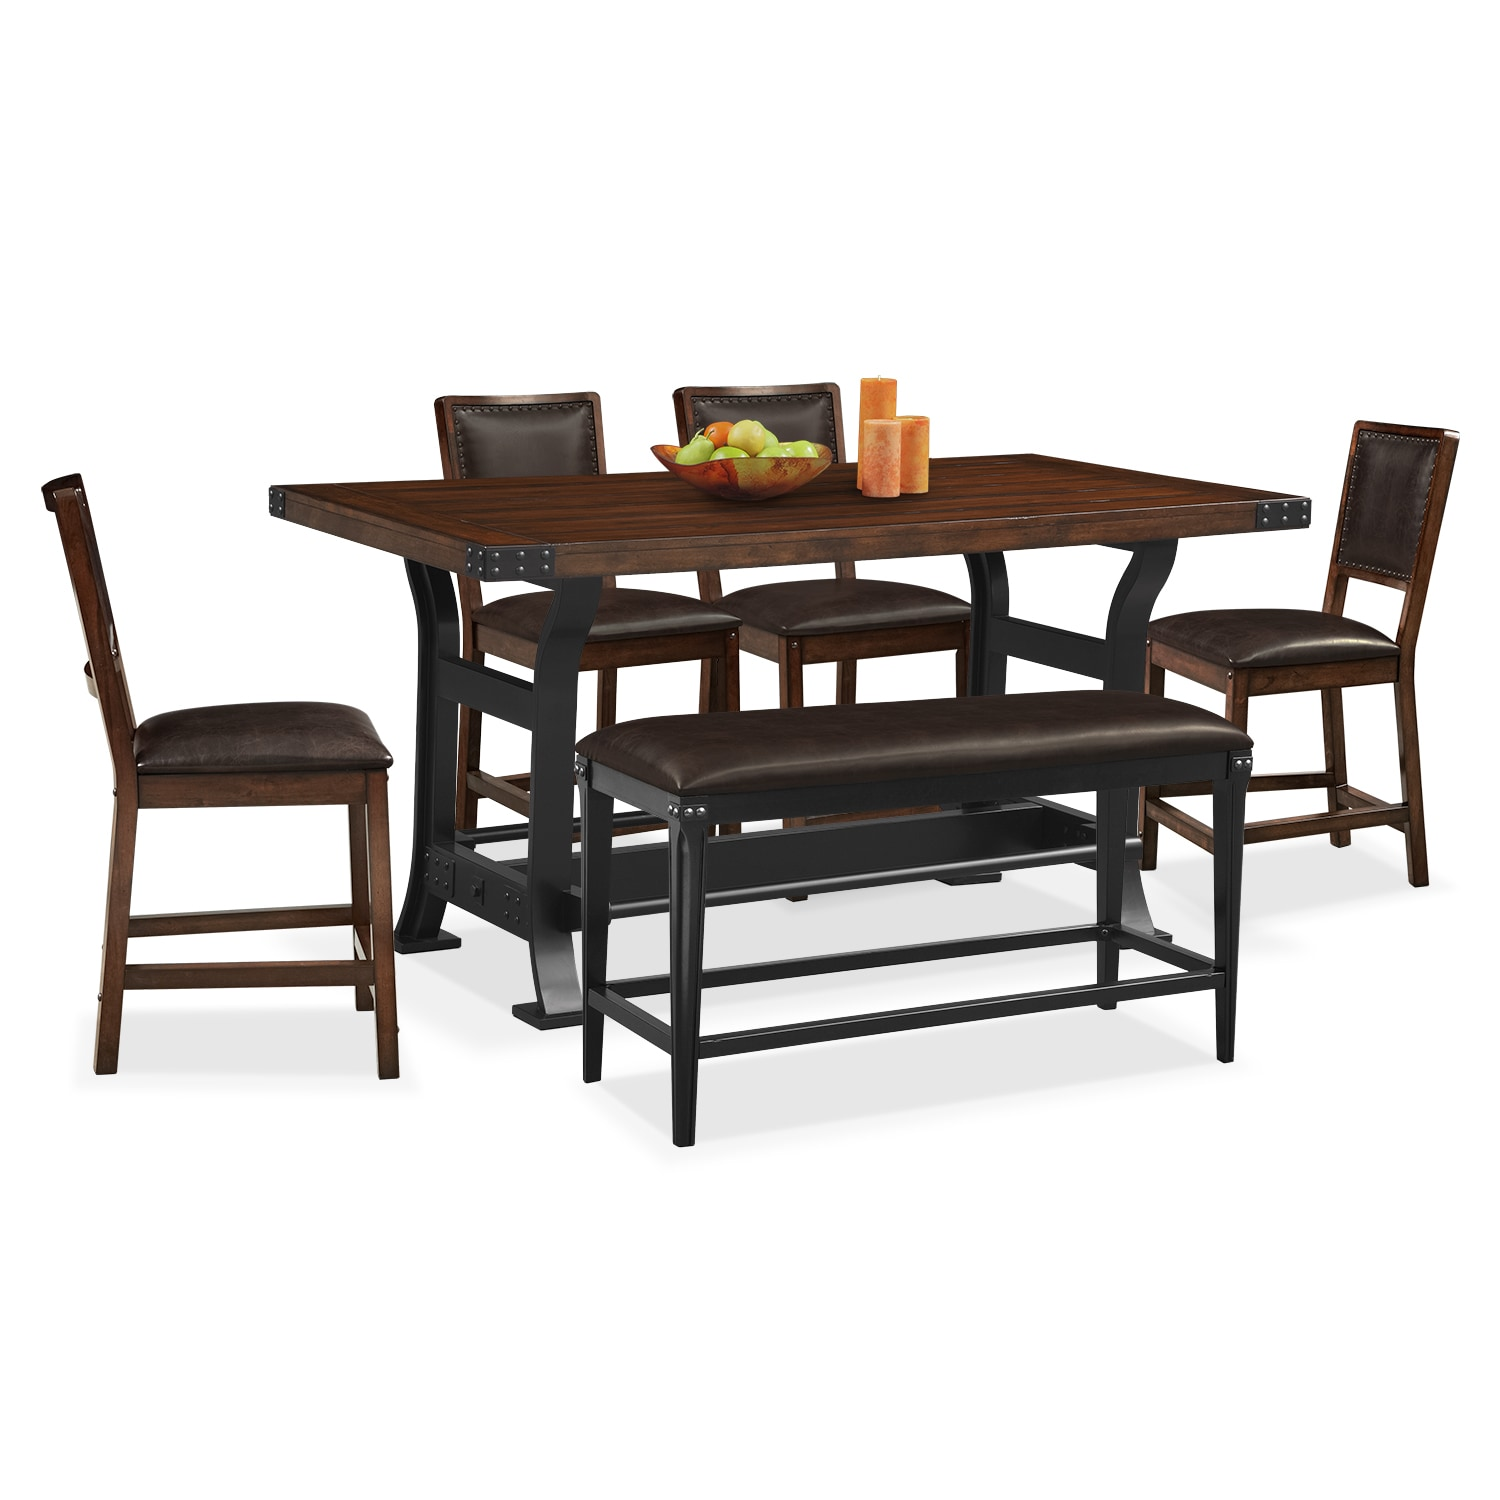 bar height tables and chairs ikea markus chair review newcastle counter dining table 4 side